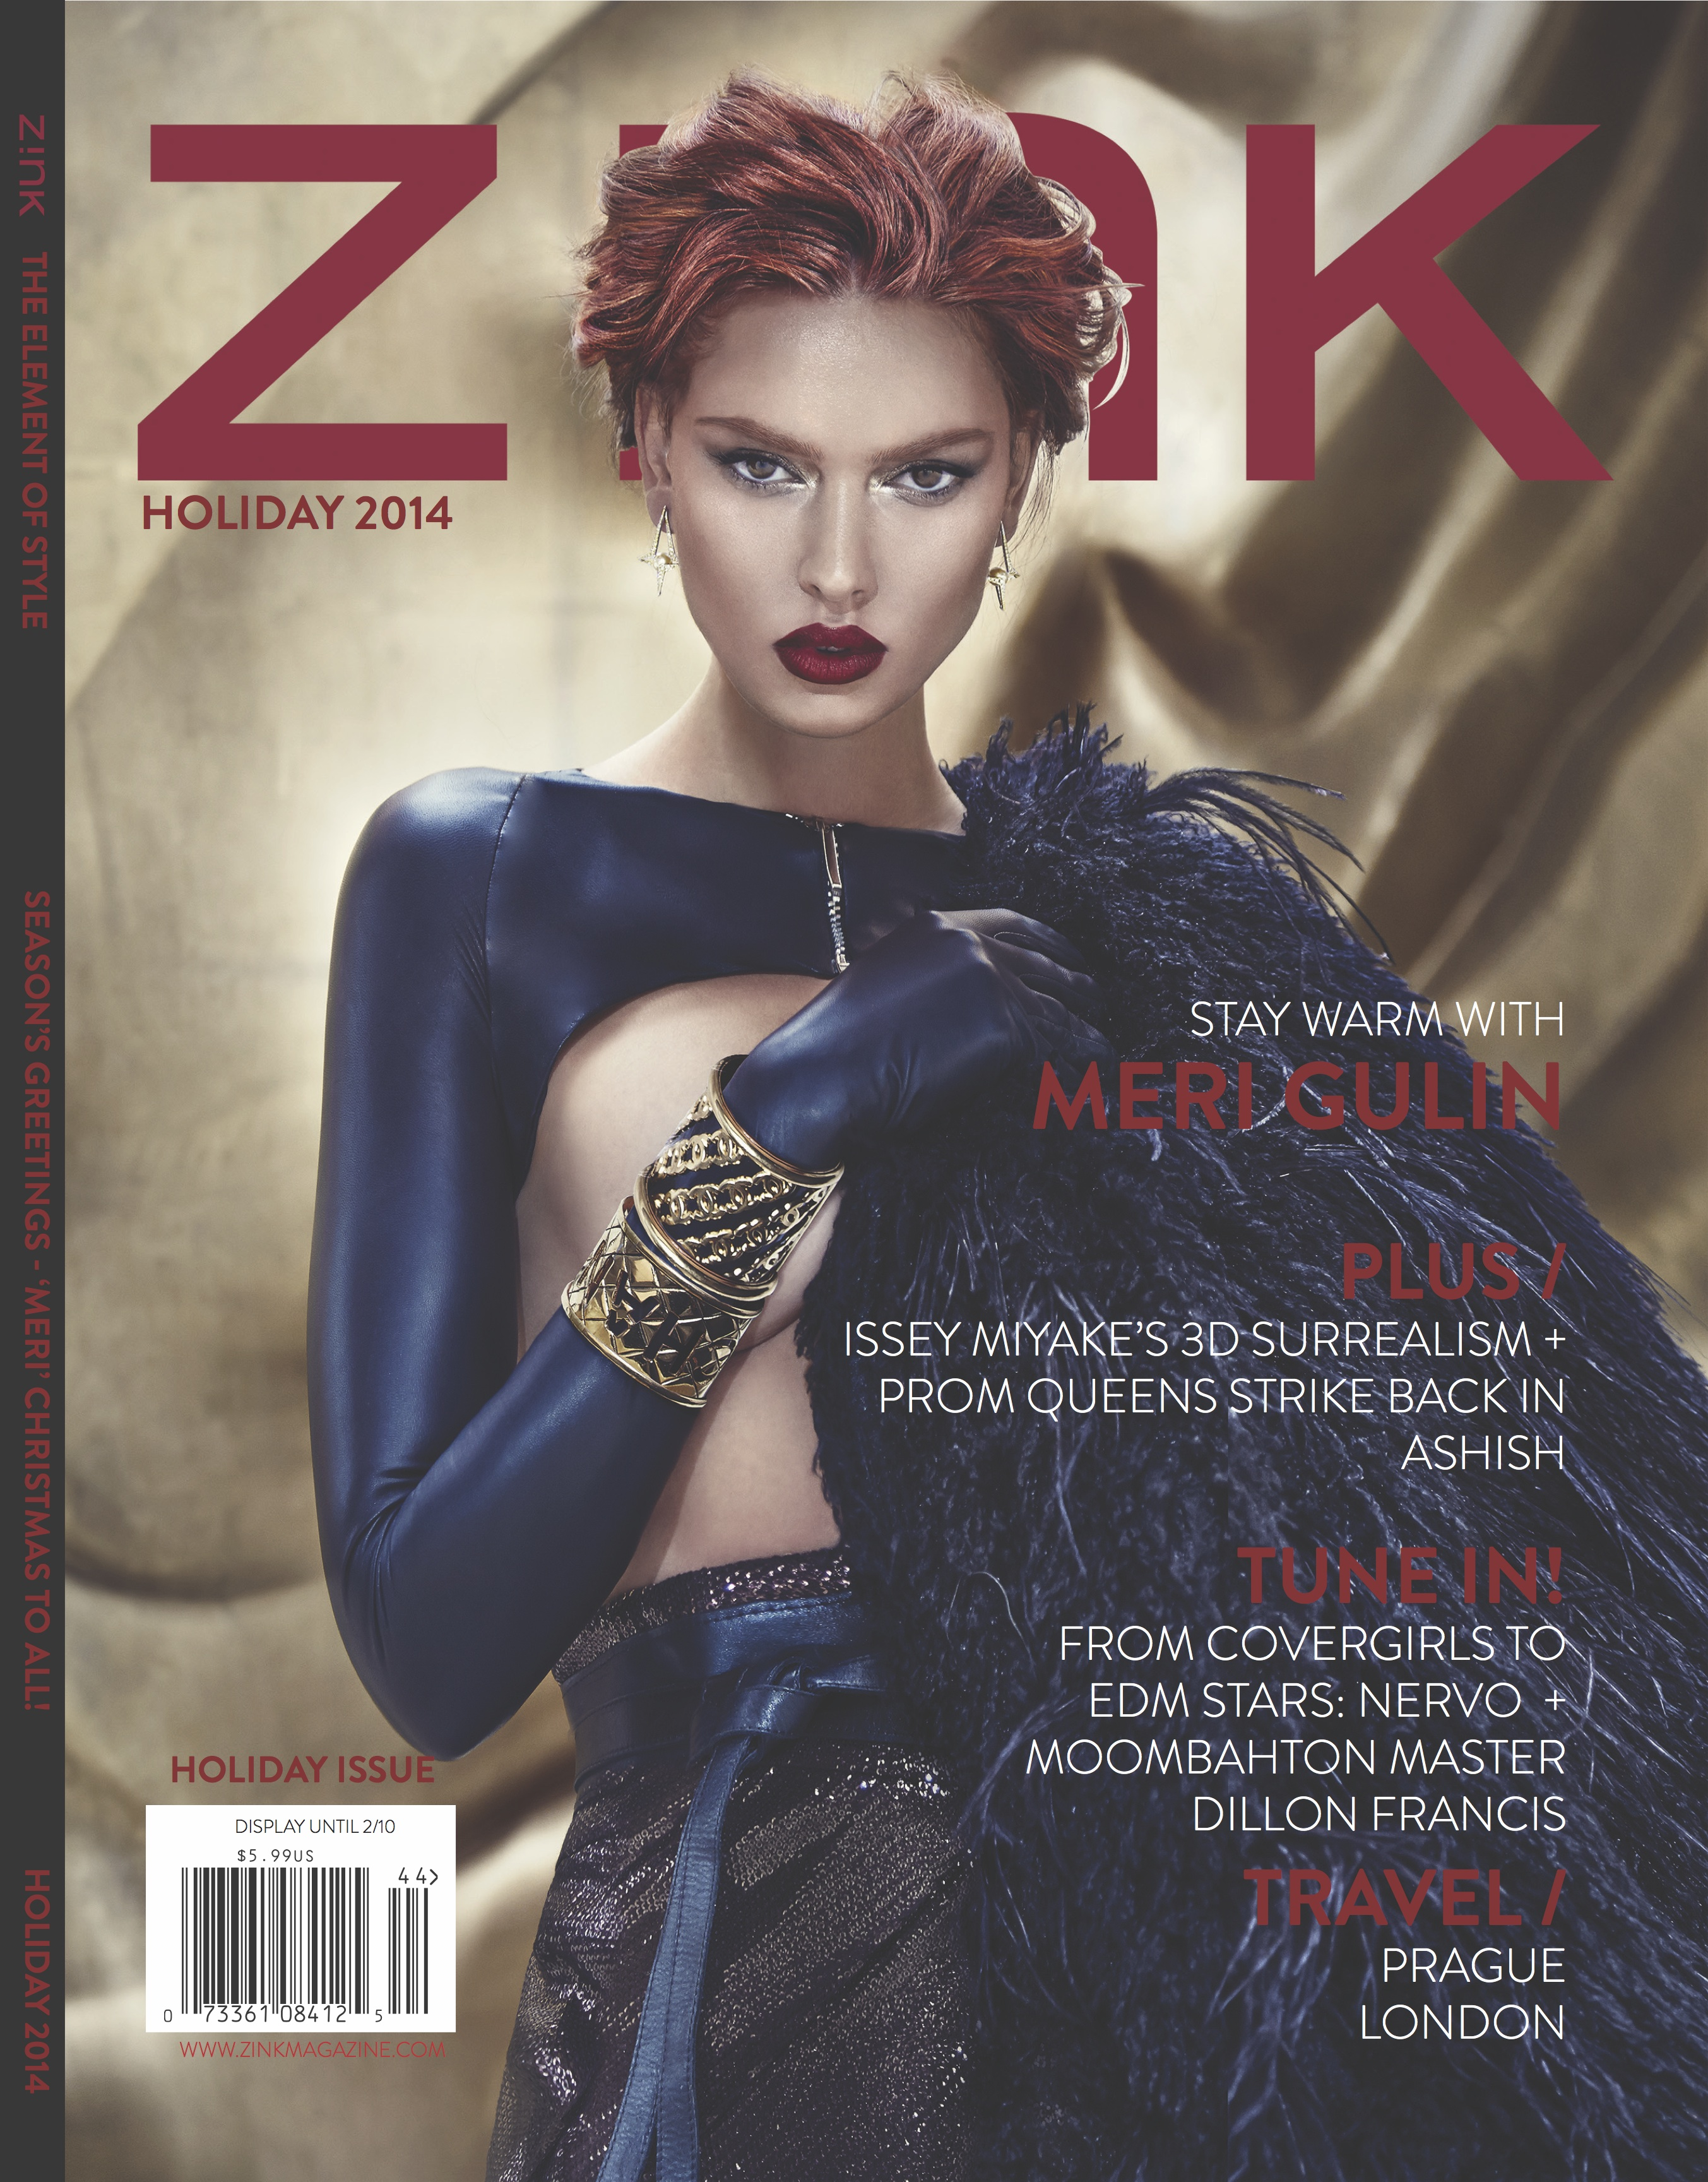 Holiday 2014 Cover - Z!NK Magazine